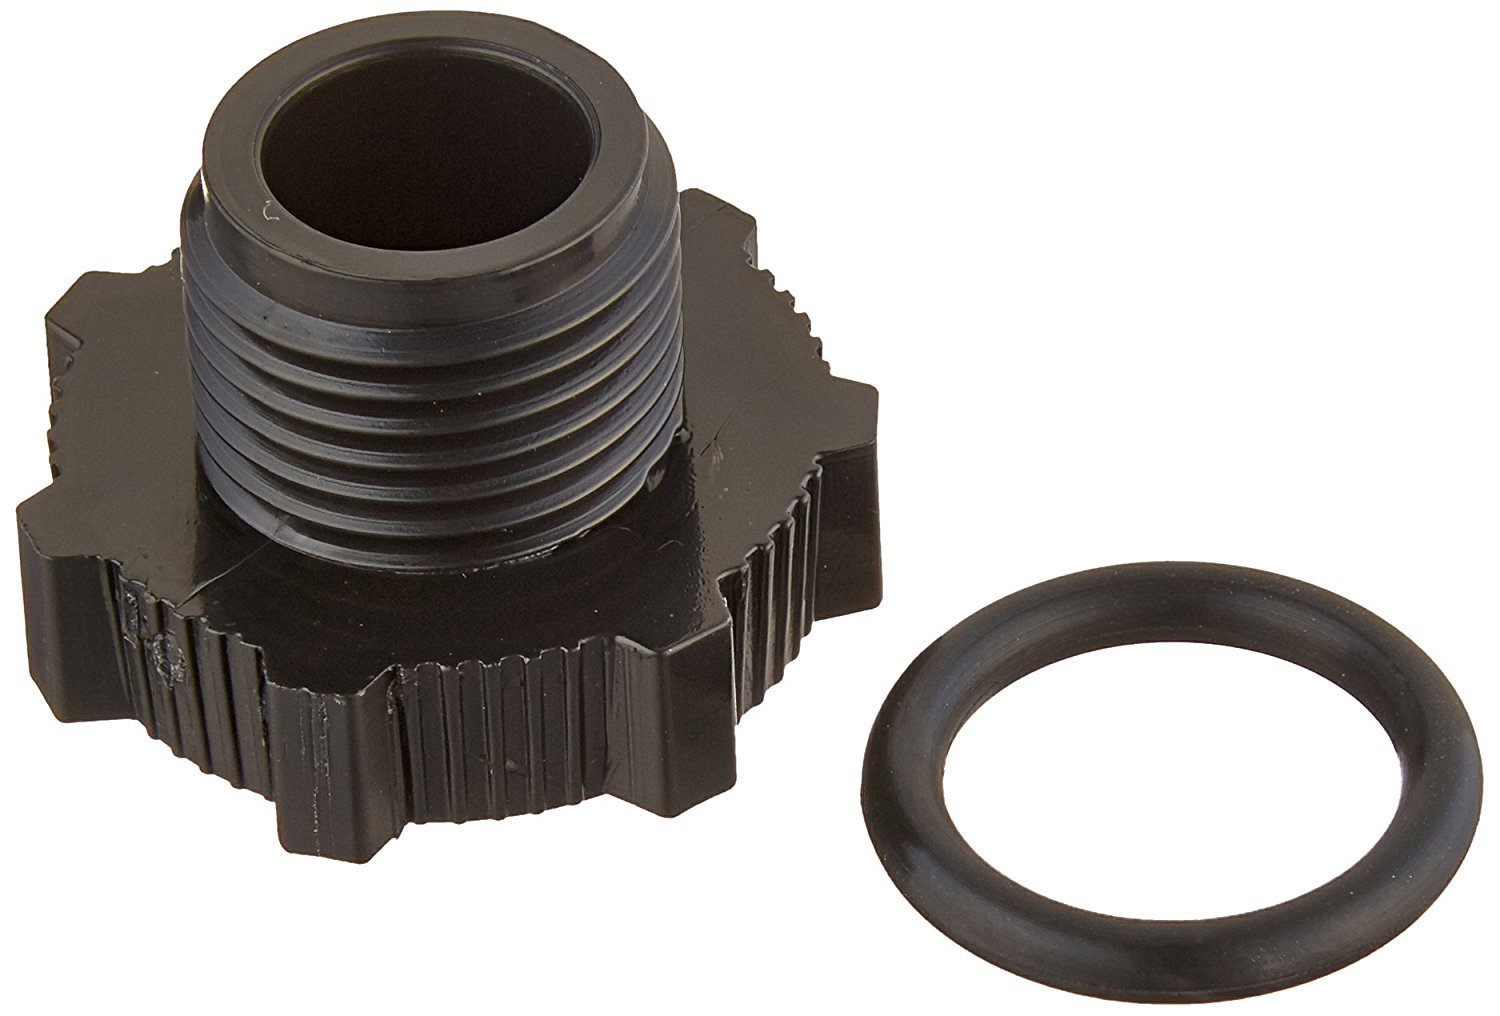 Hayward CX250Z14A Drain Plug Kit Replacement for Hayward Star-Clear Cartridge Filter and Chlorine an